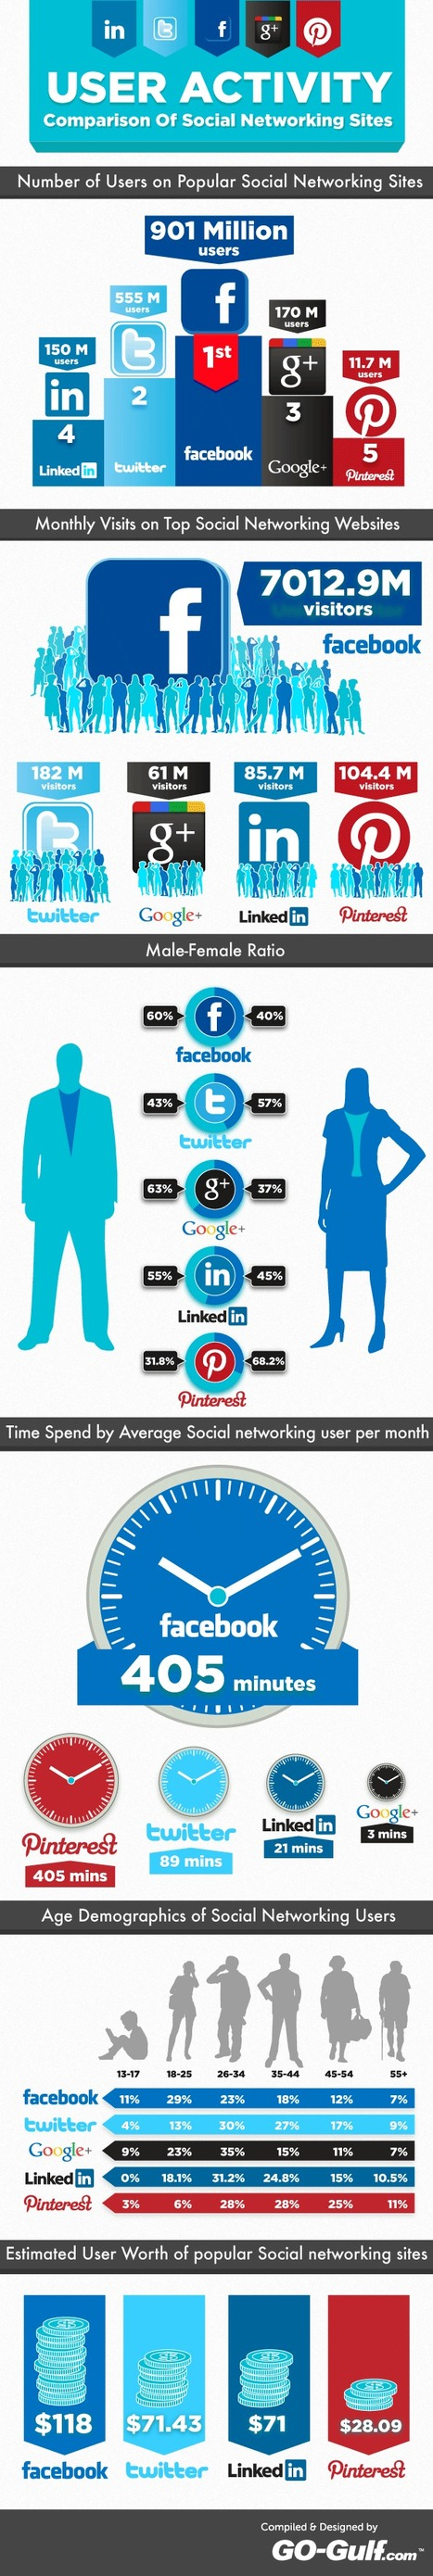 User Activity Comparison Of Popular Social Networking Sites [INFOGRAPHIC] | Social media and education | Scoop.it